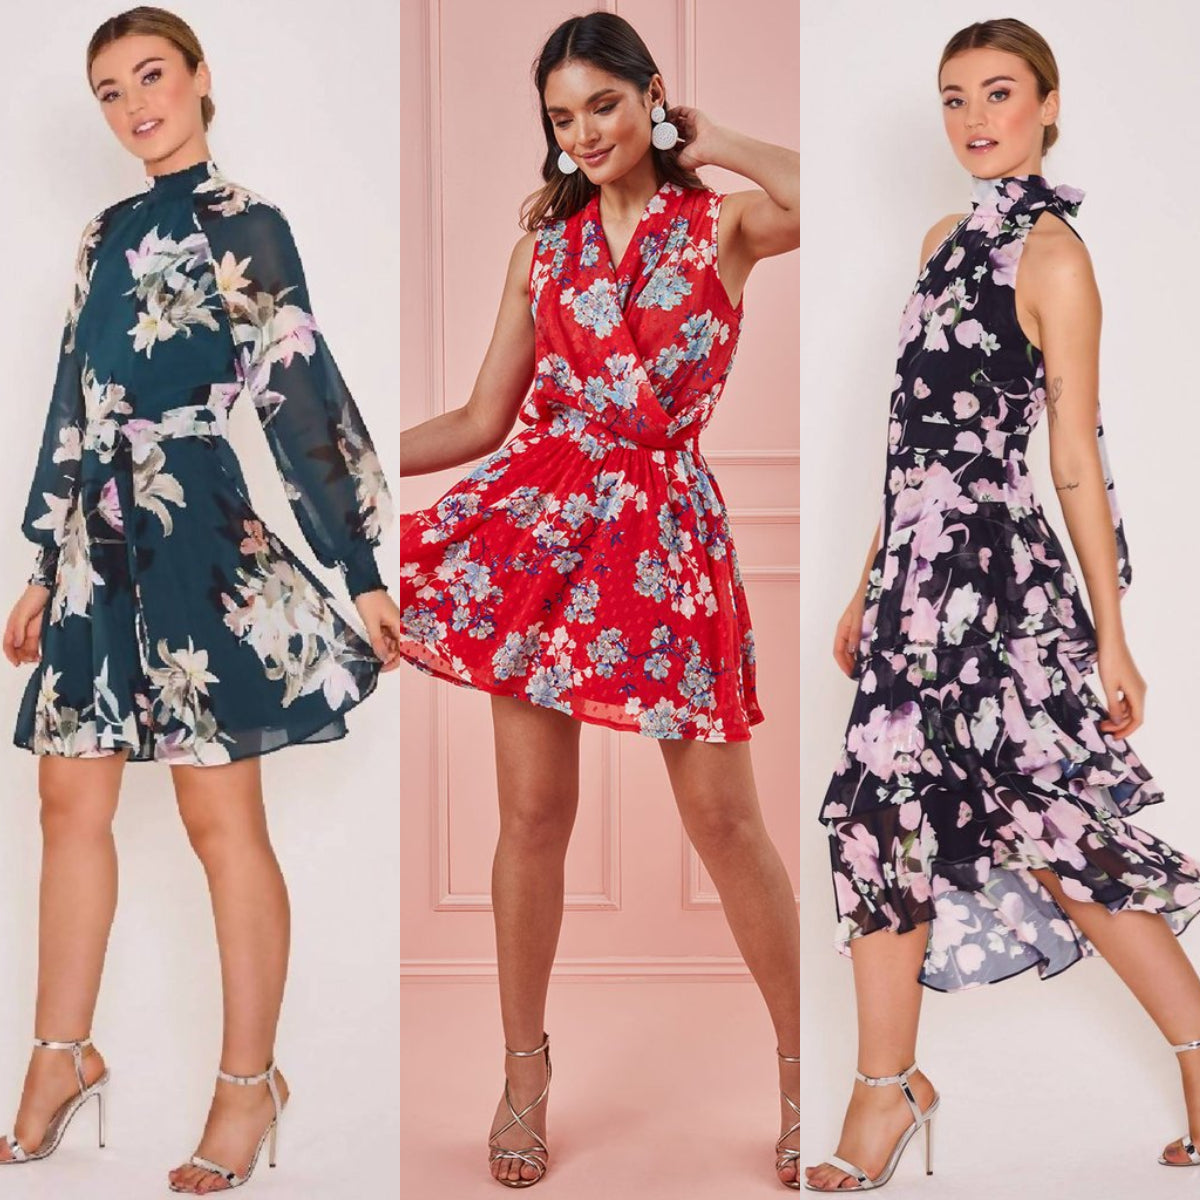 Floral Prints For Lockdown Date Night Outfit Ideas